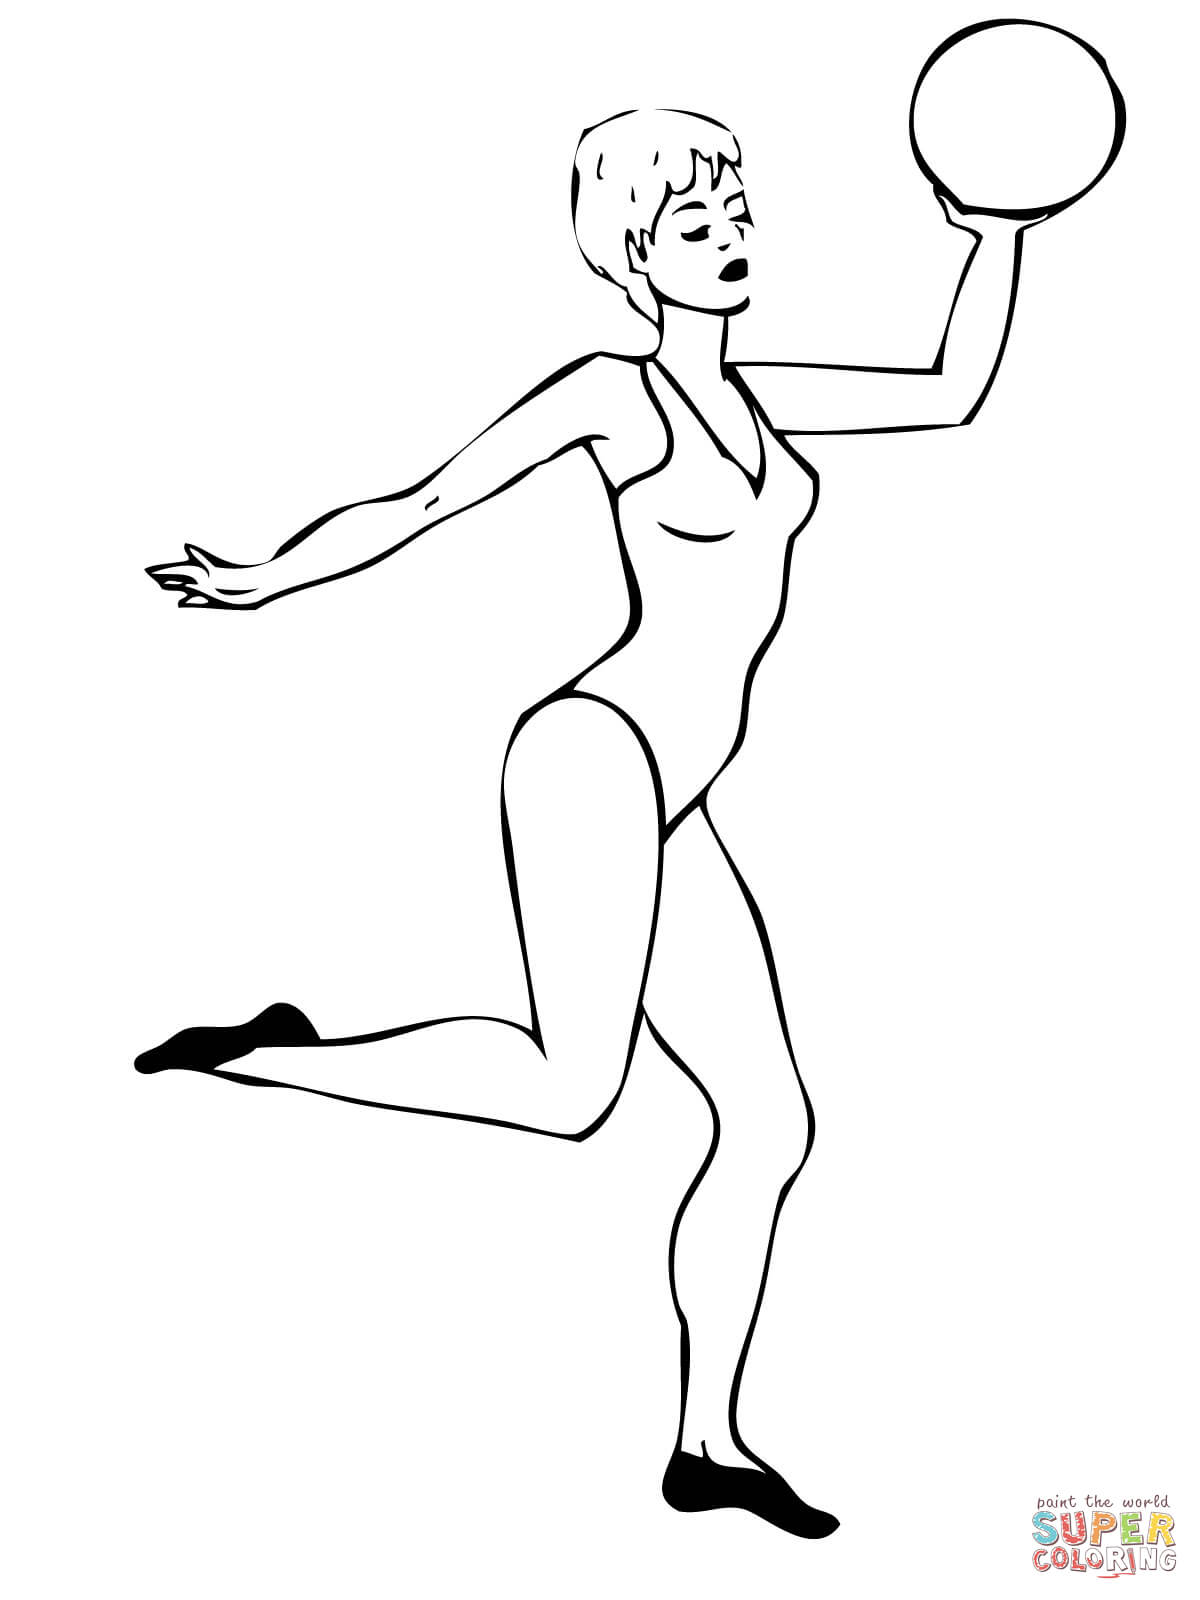 Rhythmic Gymnast Perfoming With A Ball Coloring Page